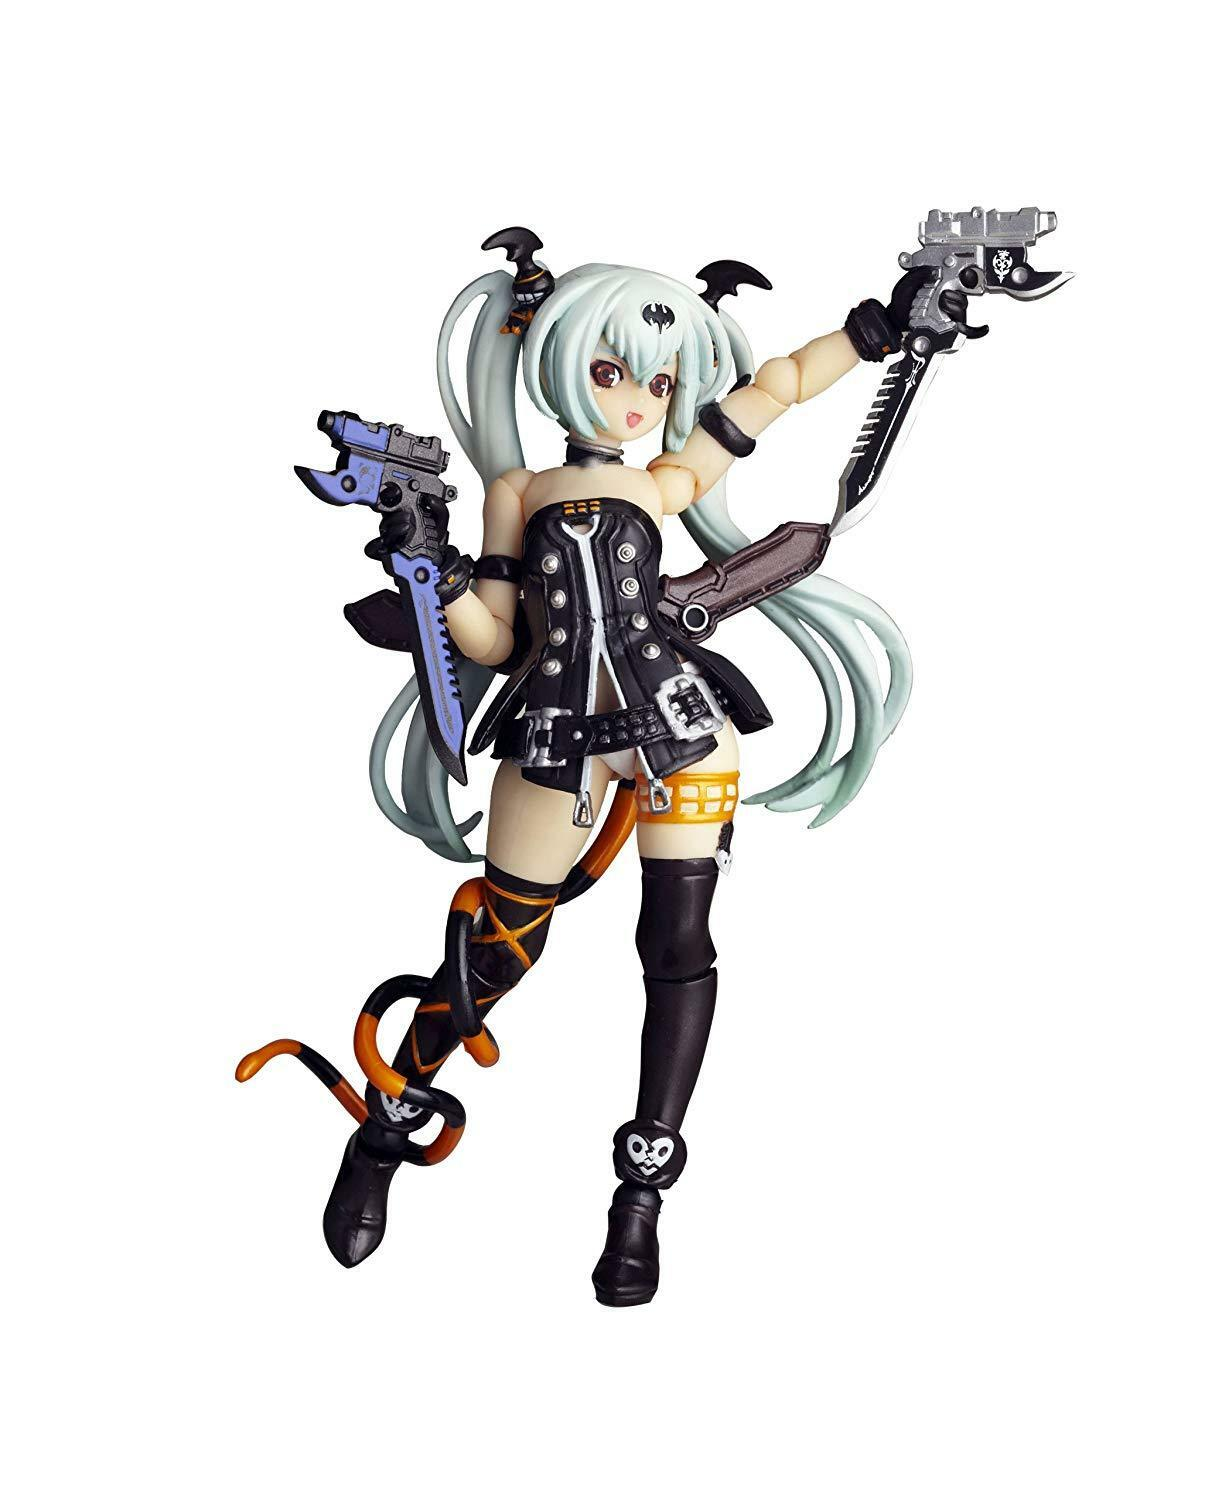 Legacy of Revoltech Queen's Gate GATE Alice  environ 135 mm Figure LR-003 Japan  vente d'usine en ligne discount